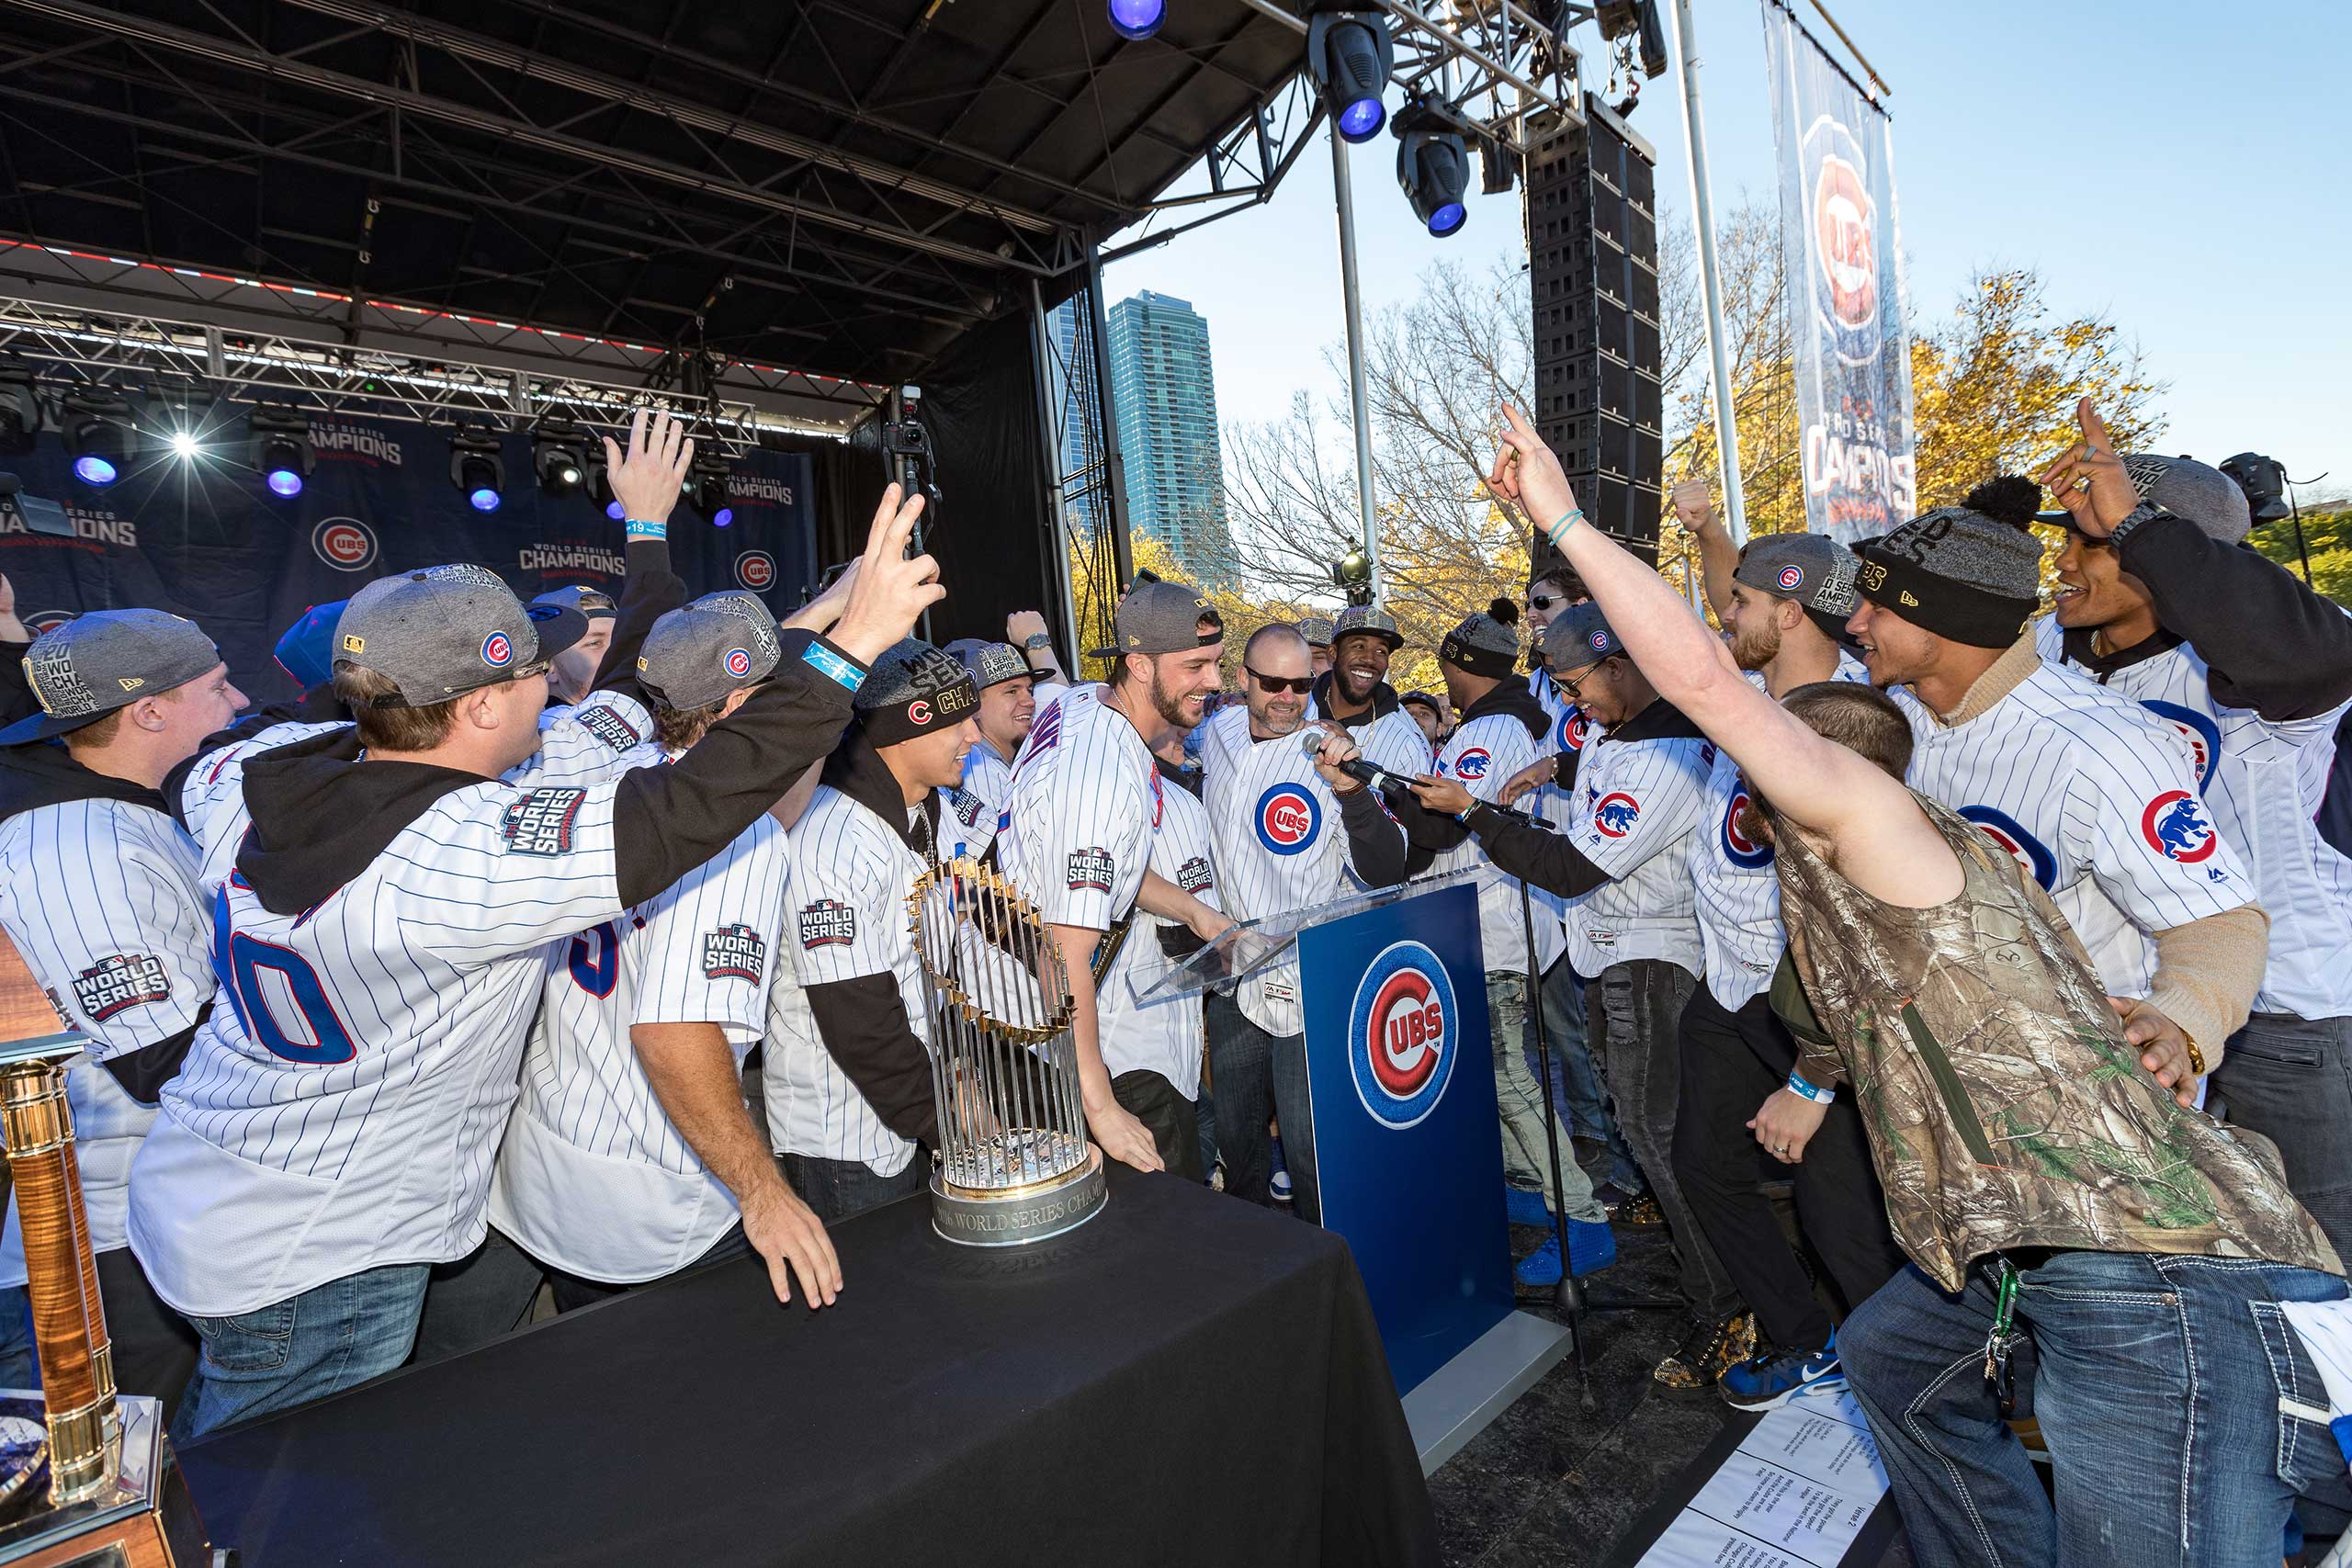 The team celebrates their championship with a parade concluding at Grant Park in Chicago, Nov. 4, 2016.